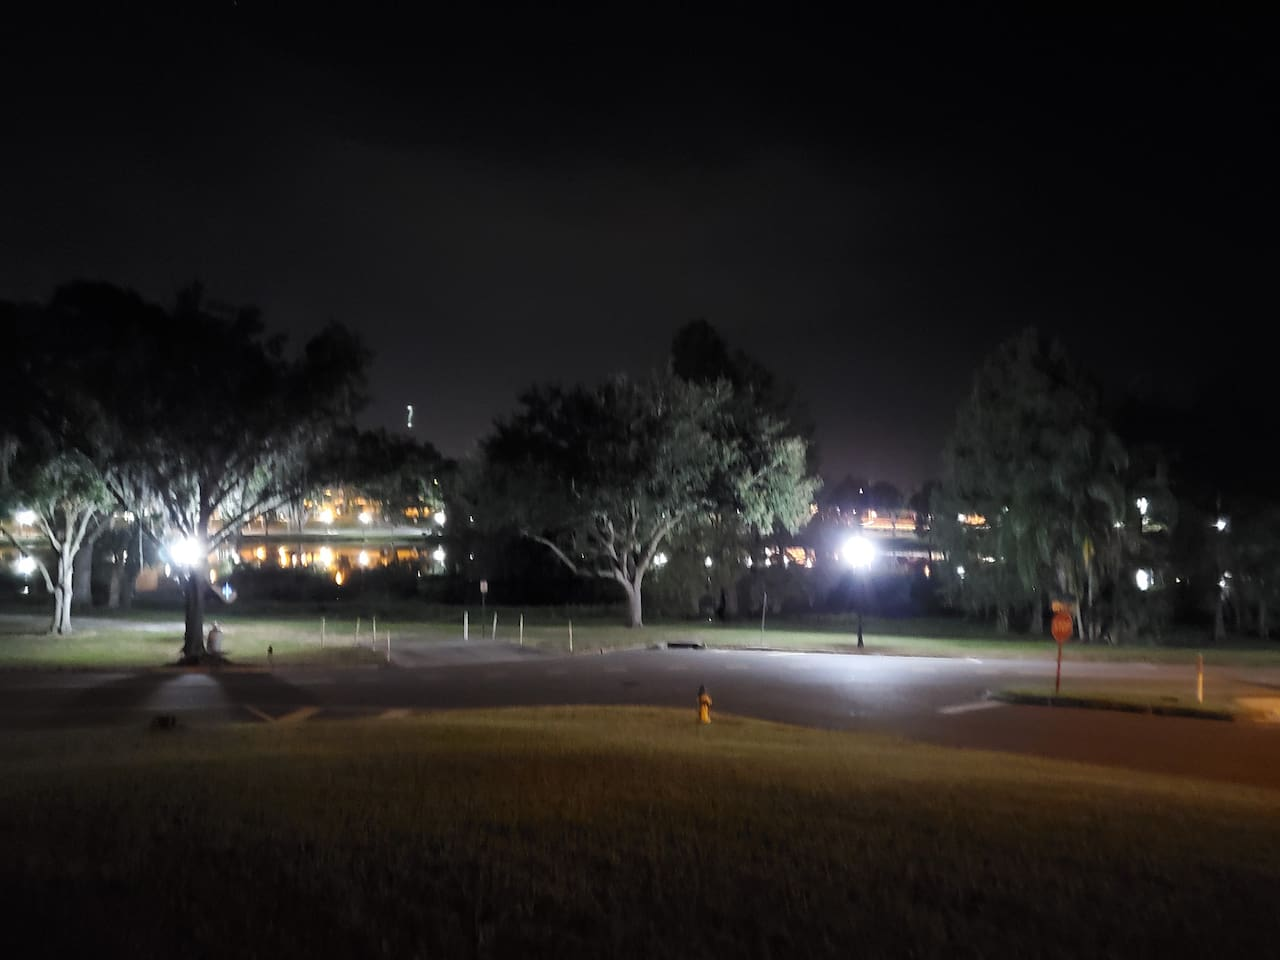 View from the porch at night.